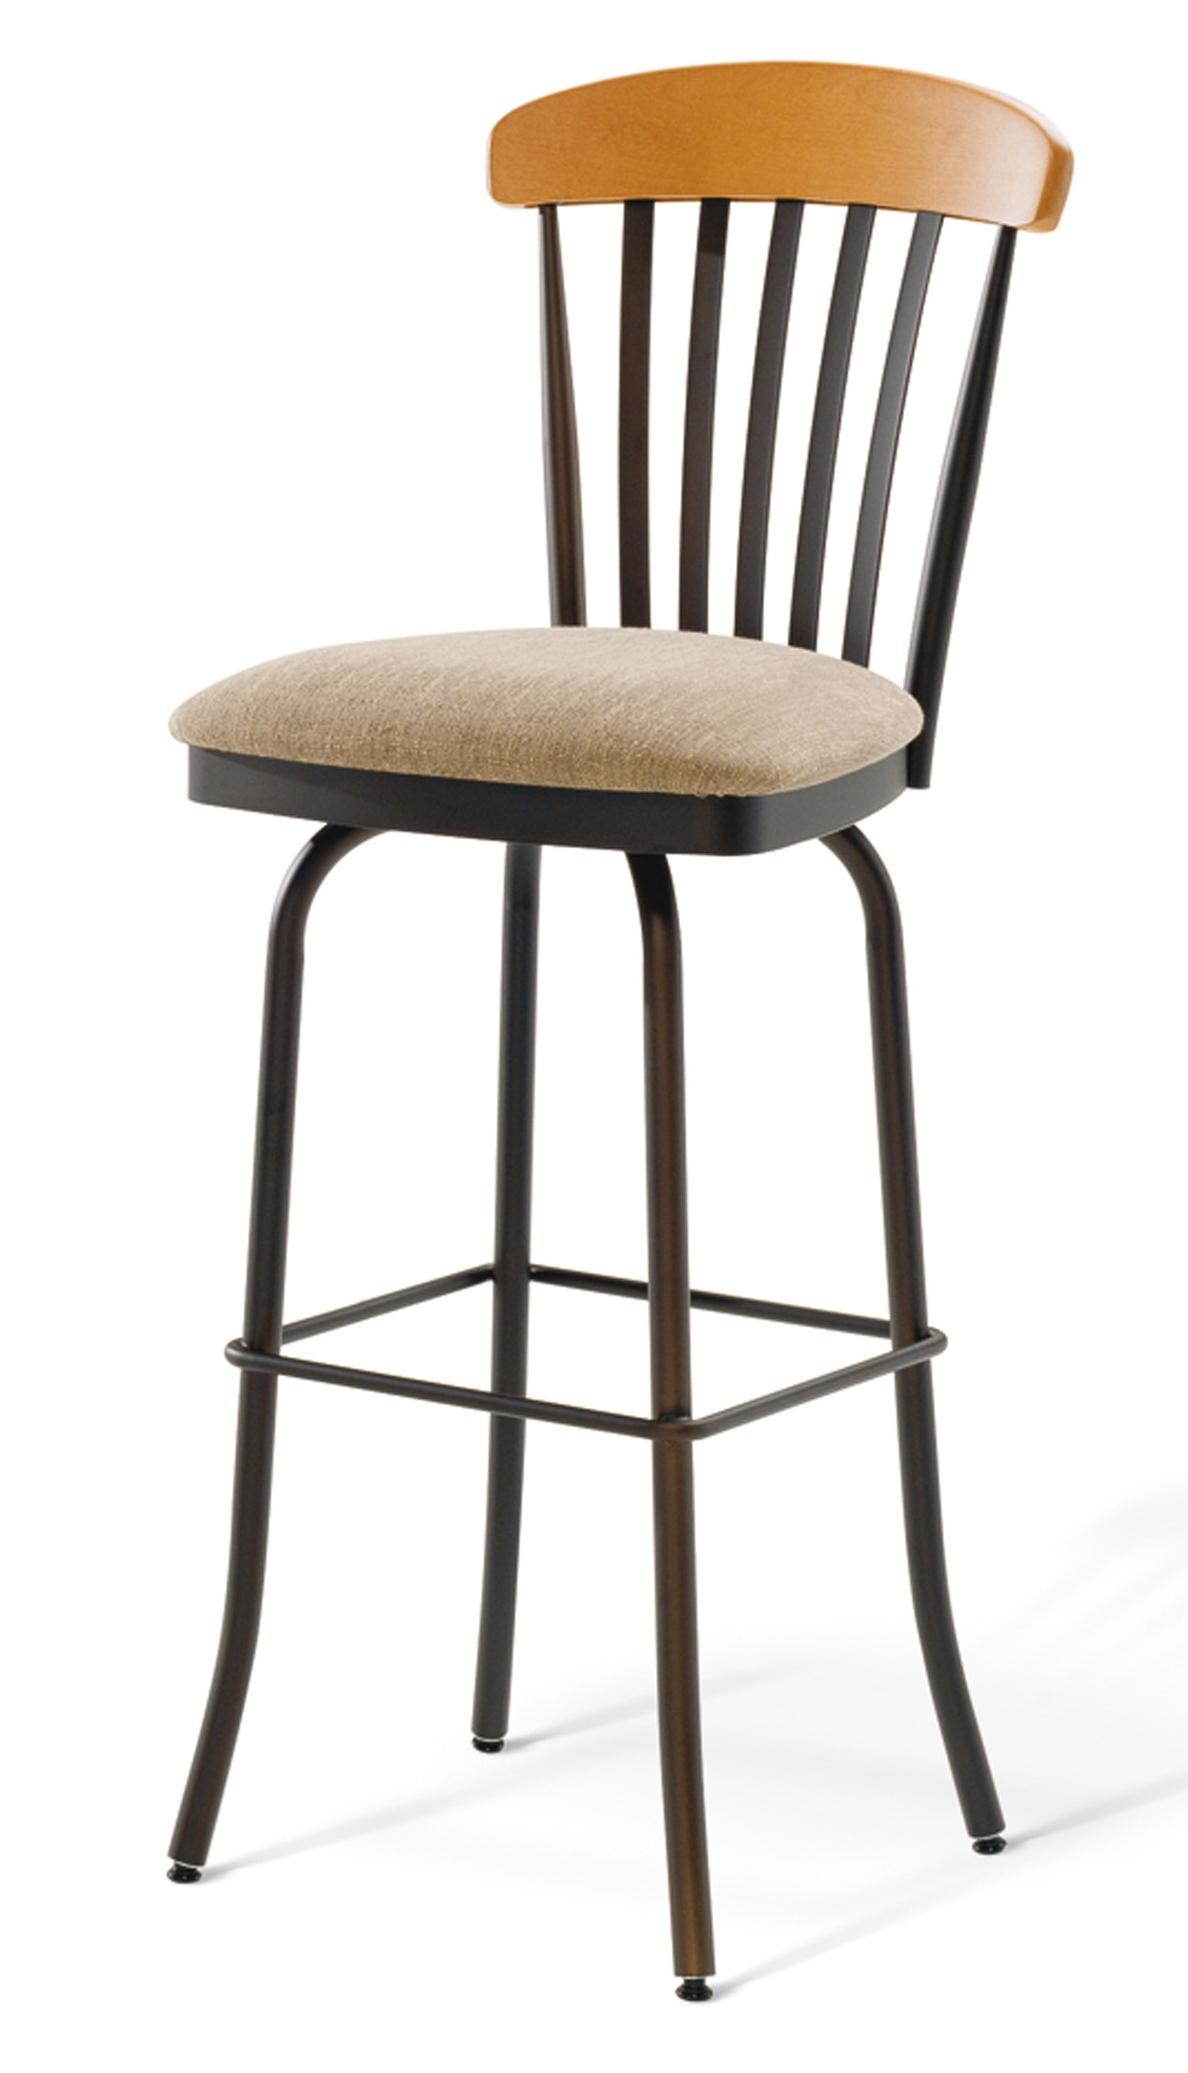 Tammu Back: Amisco Stools Tammy Swivel Stool With Upholstered Seat And